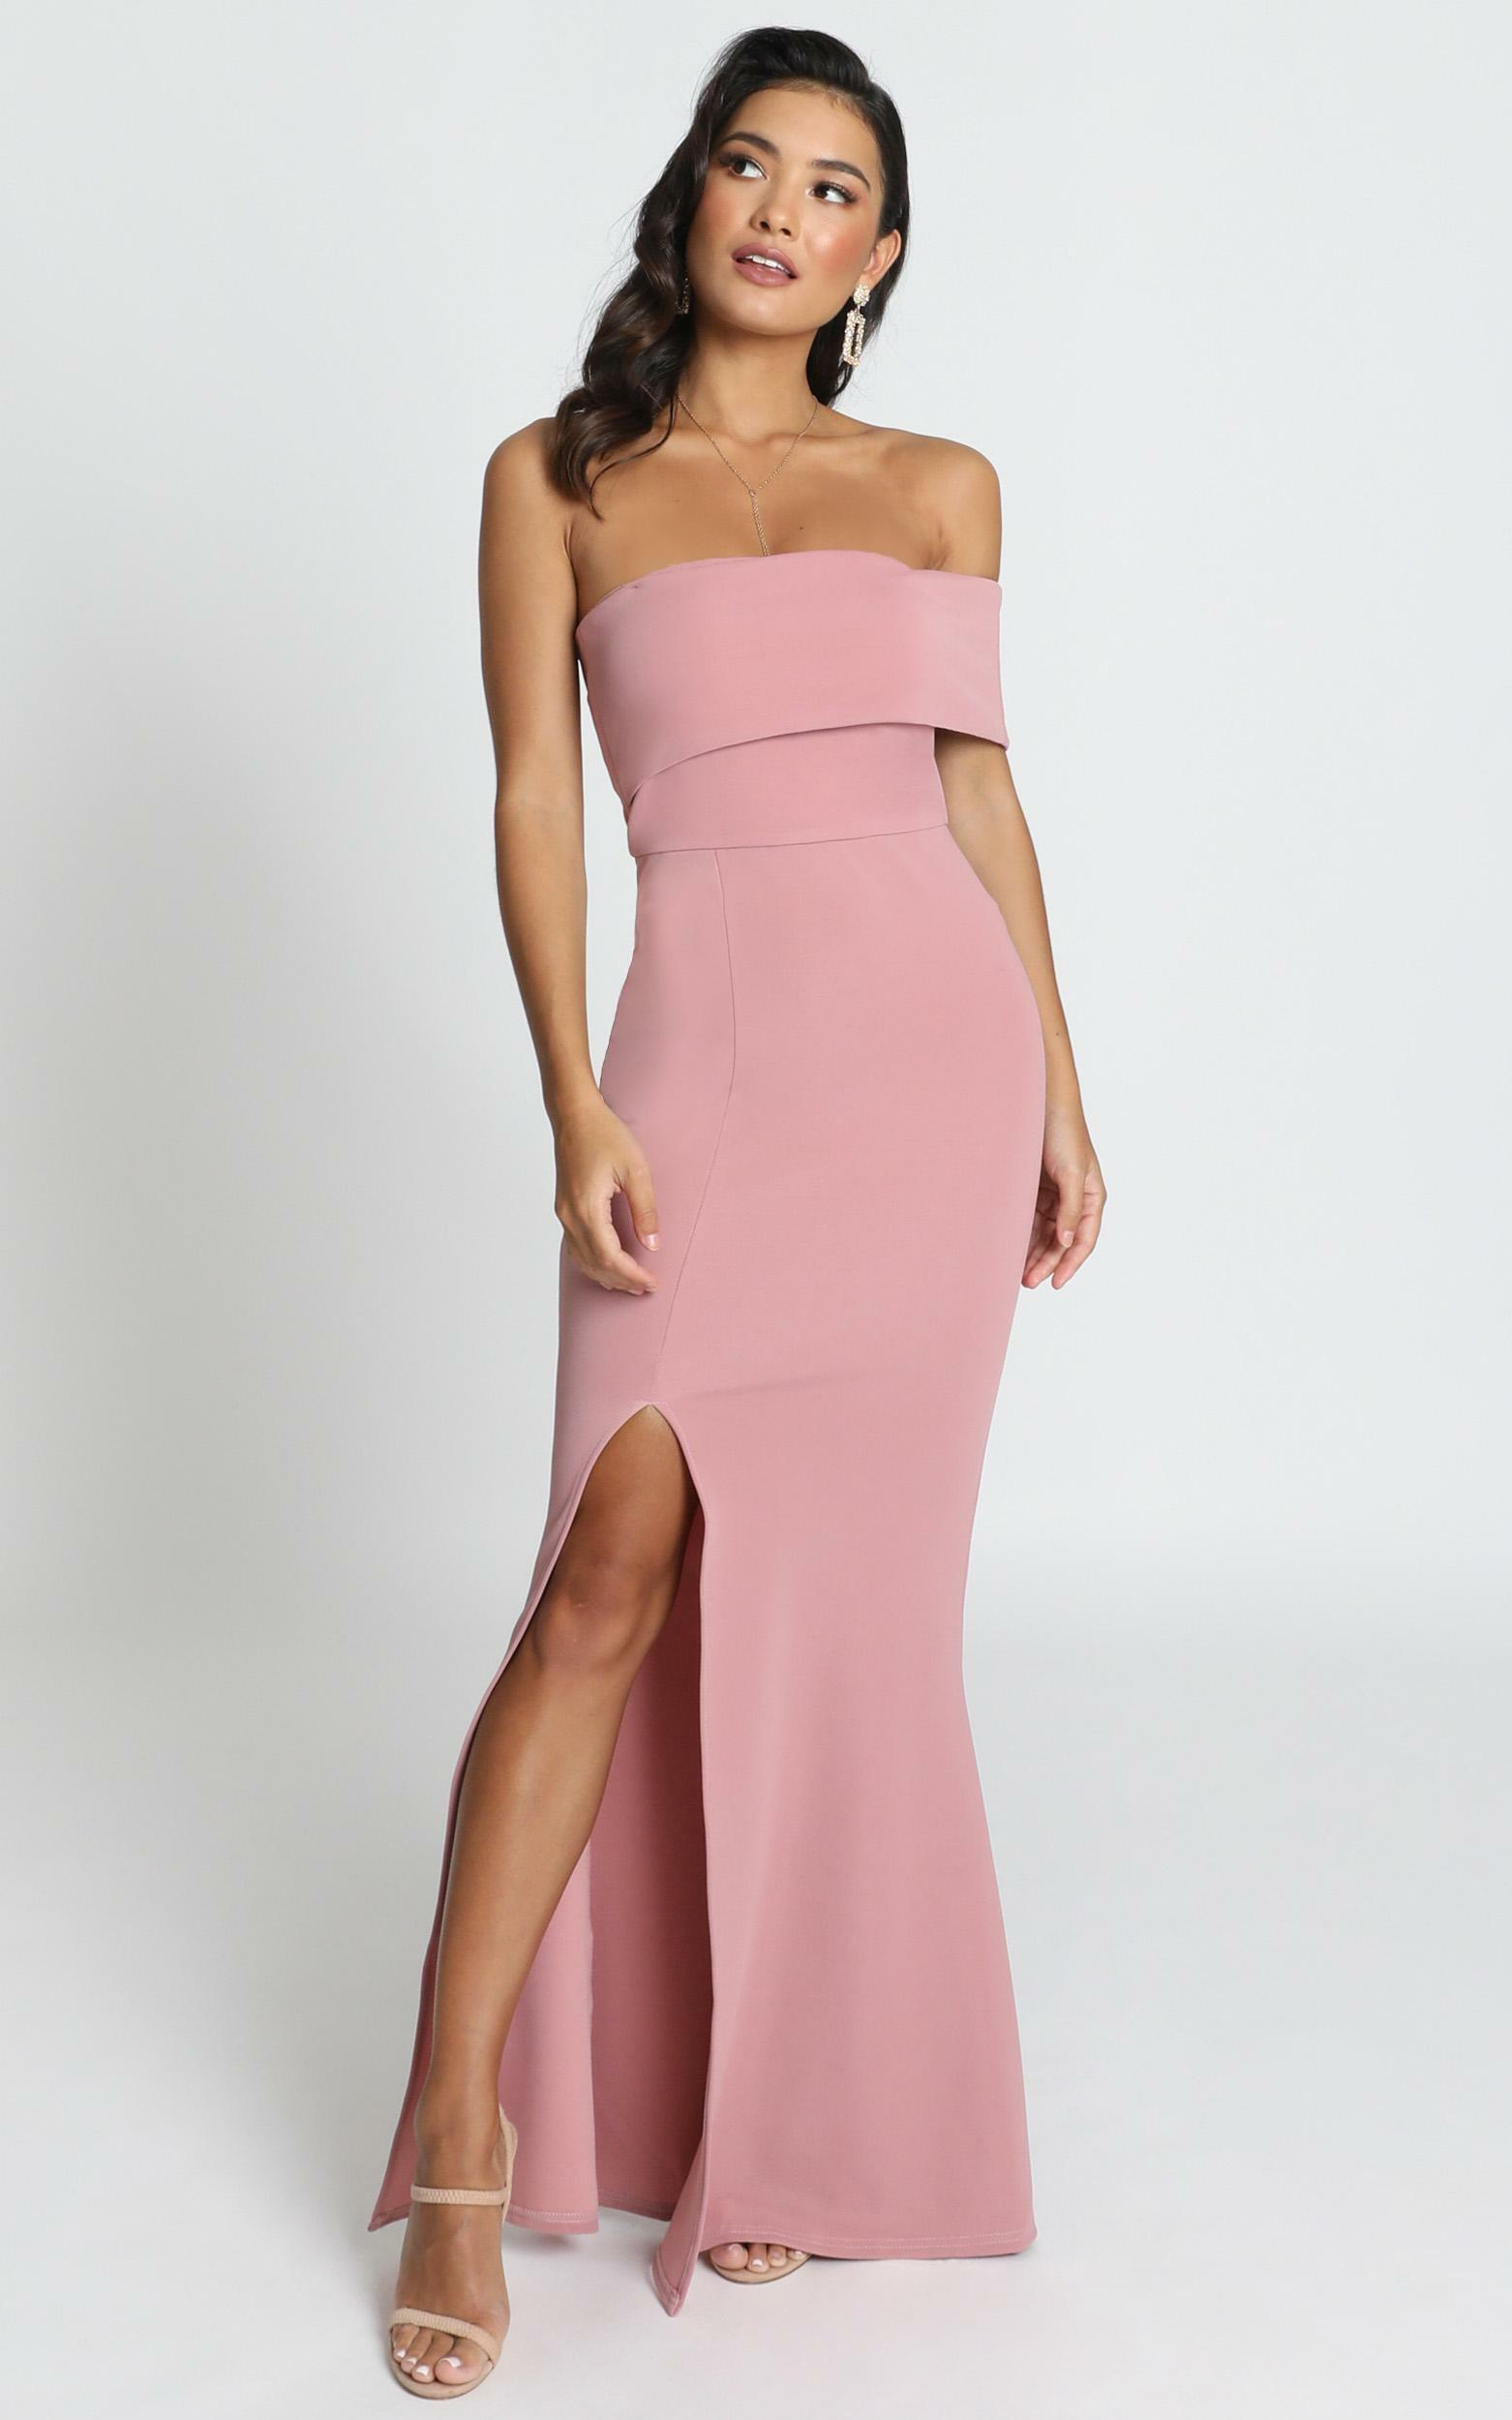 Glamour Girl Maxi Dress in dusty rose - 20 (XXXXL), Pink, hi-res image number null